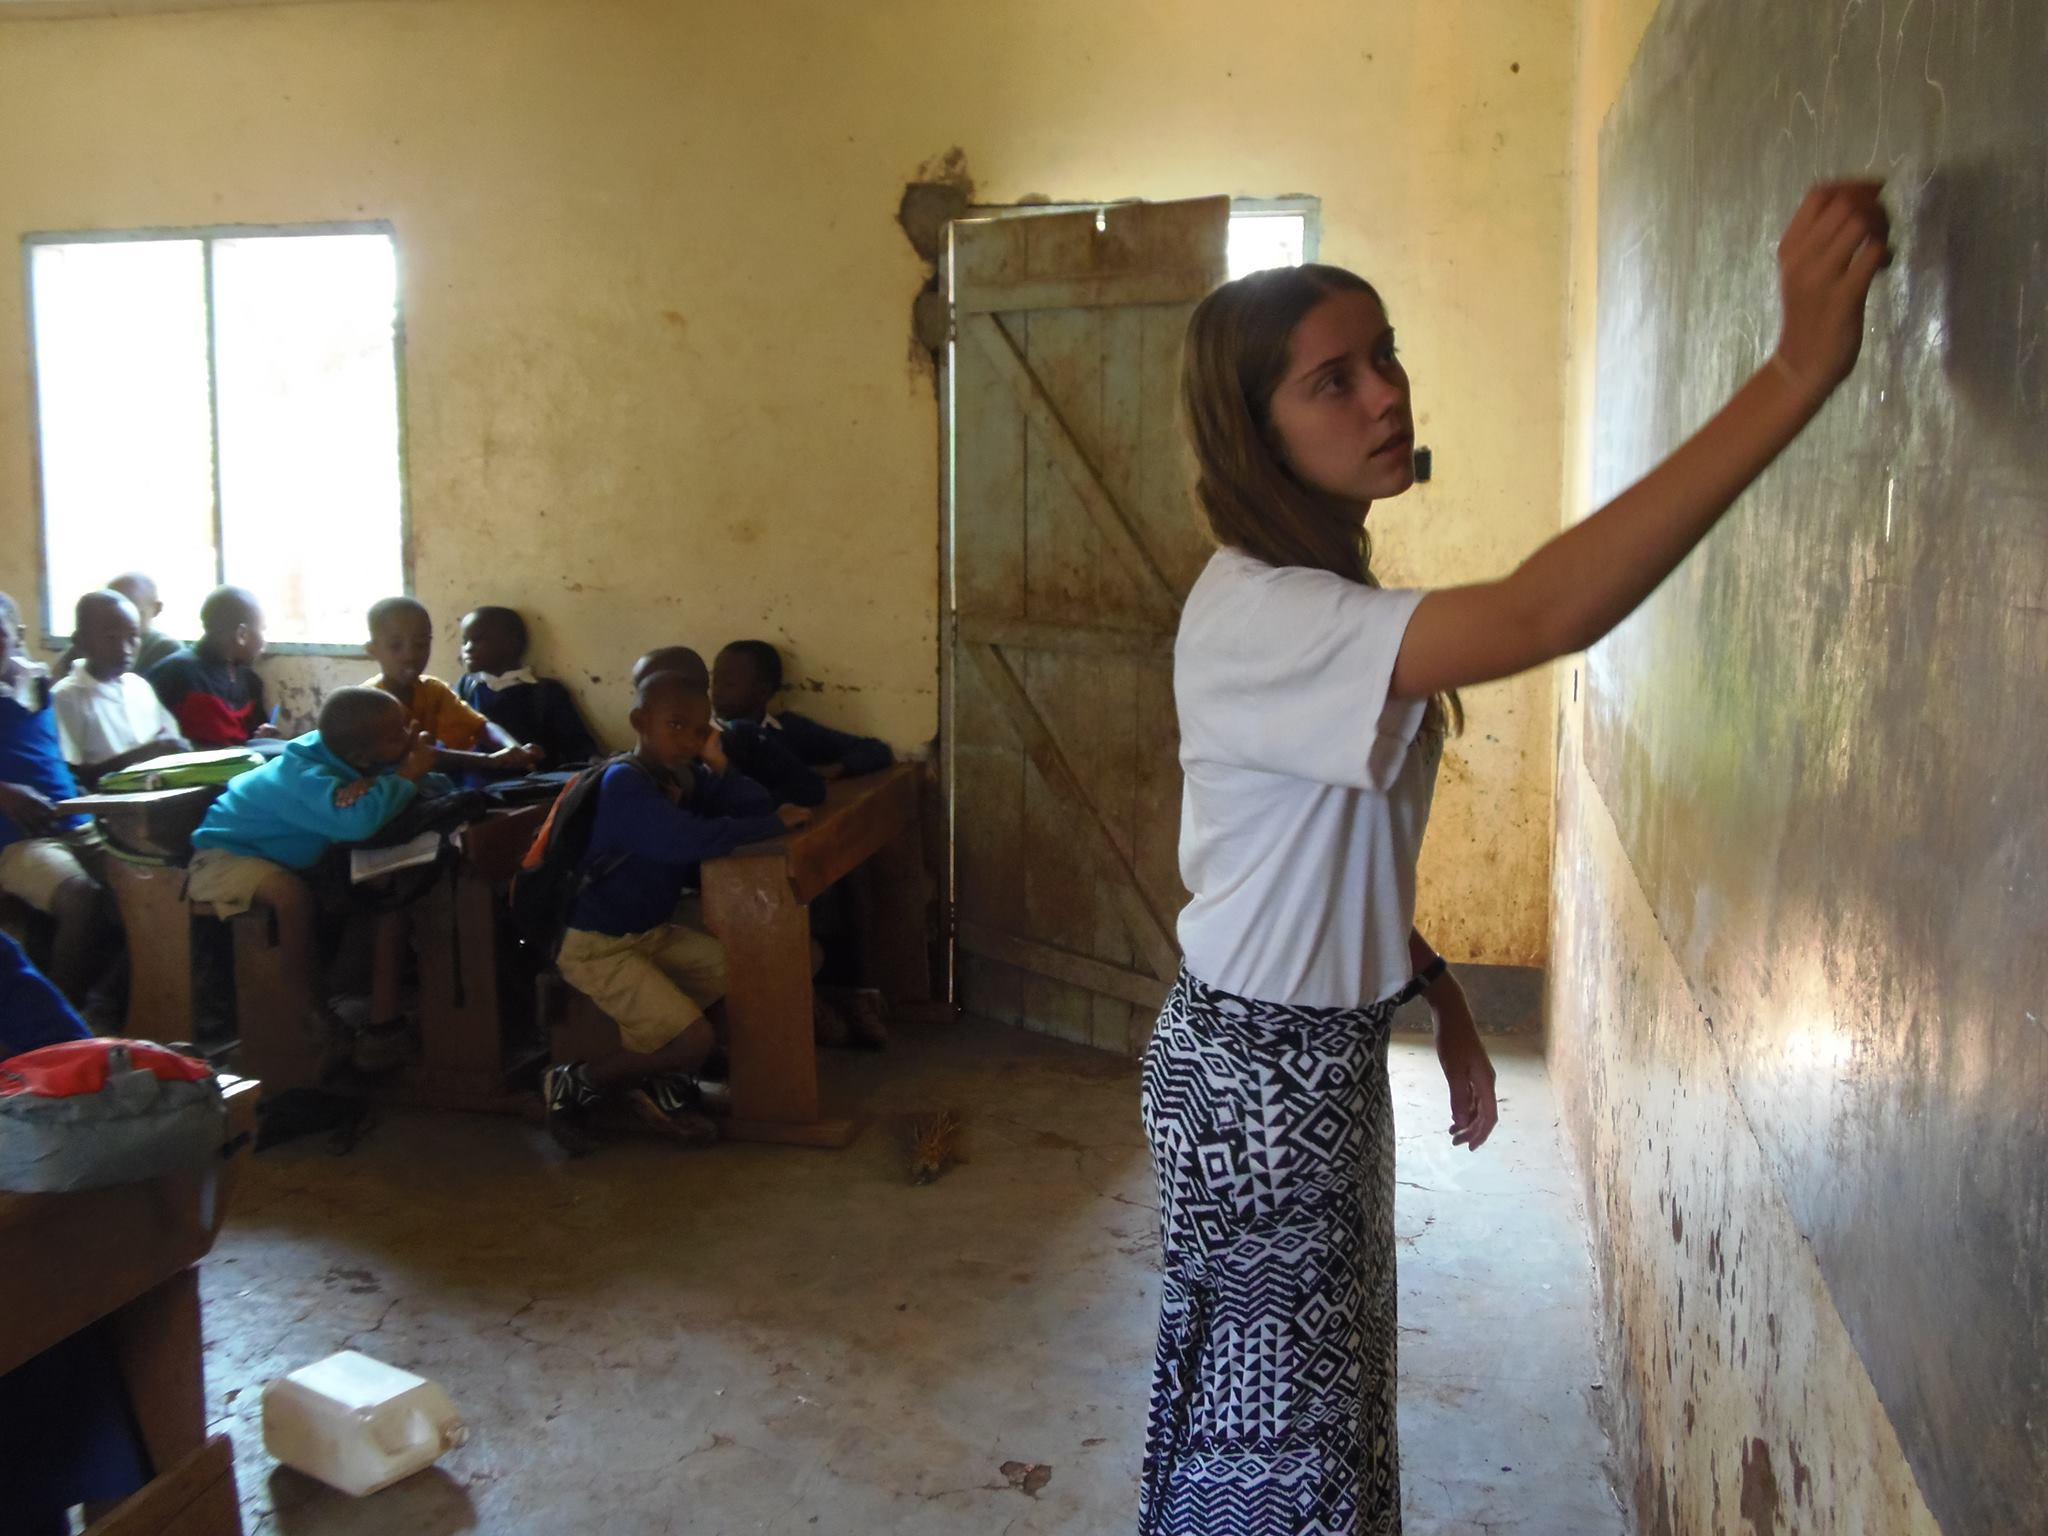 Summer Program - Adventure/Trips | Global Leadership Adventures: Tanzania - Children's Education Adventure